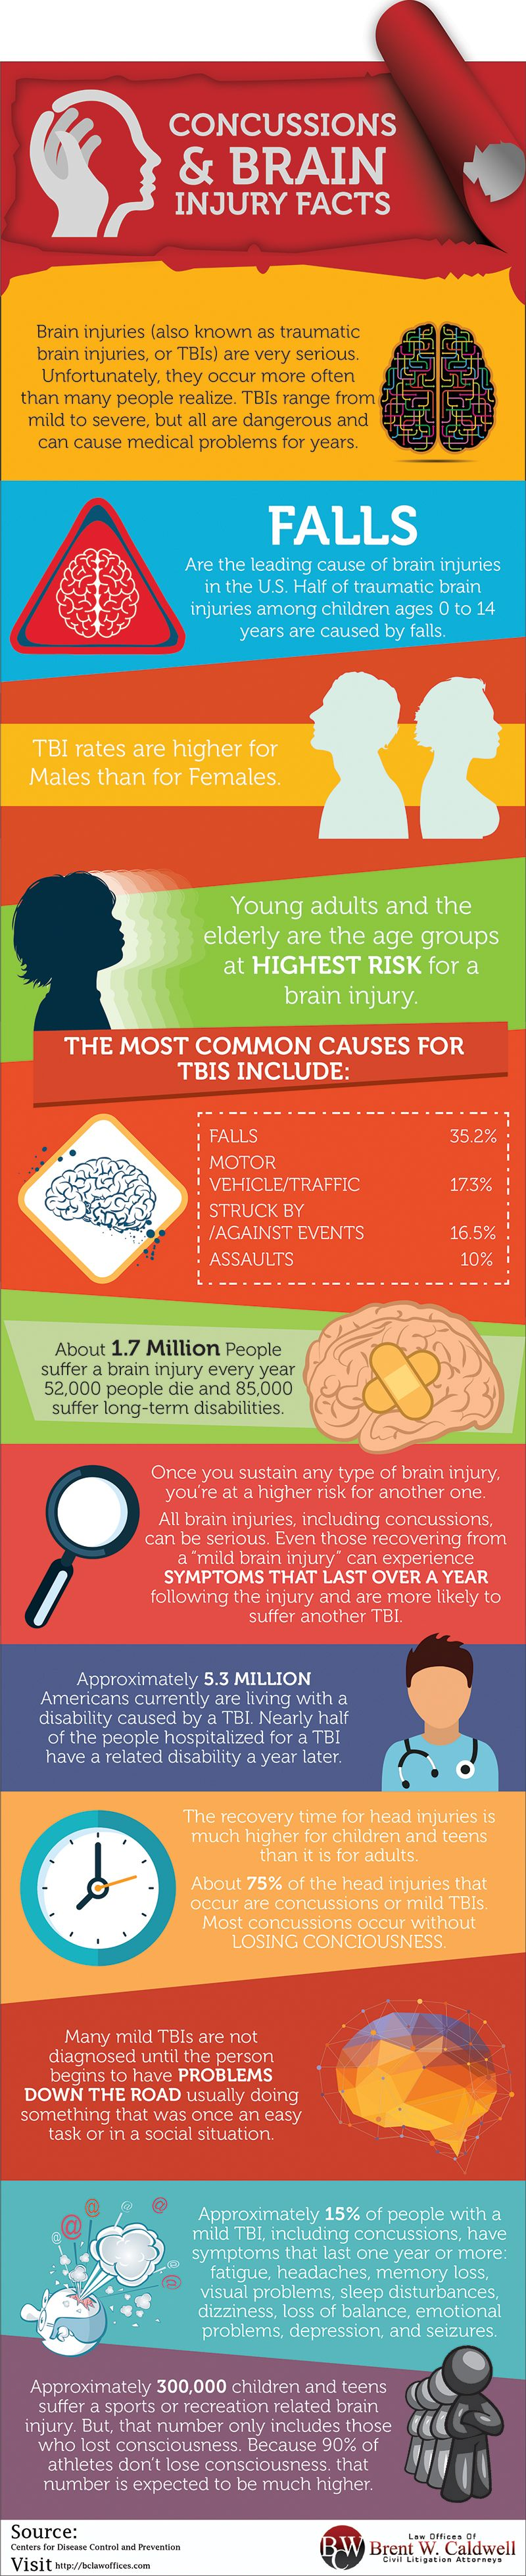 Concussions and Brain Injury Facts